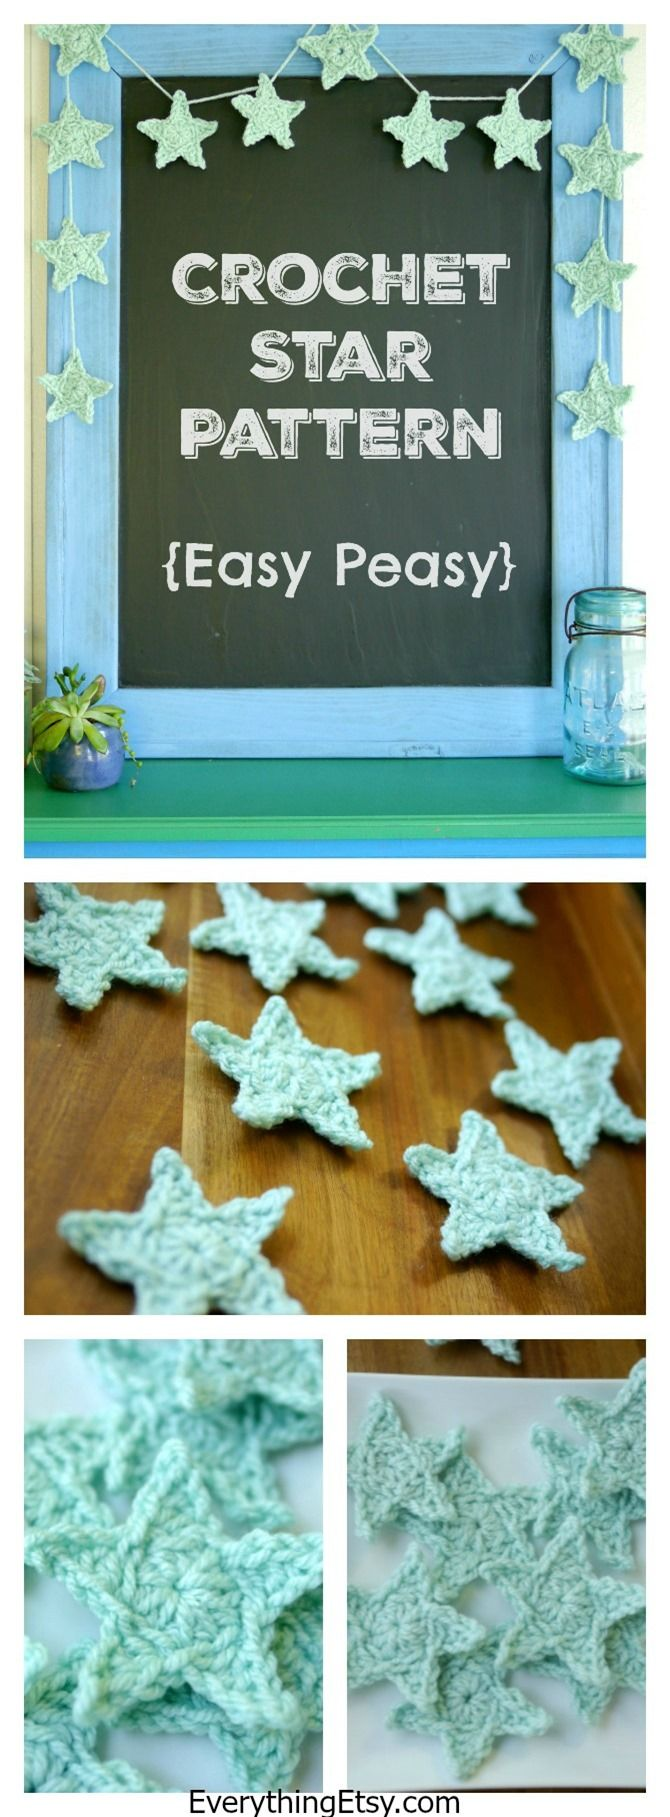 Twinkle, twinkle little star… Looking for a simple crochet project to make today? This free crochet star pattern is just what you need! Small projects are a great way to use up some of your prett